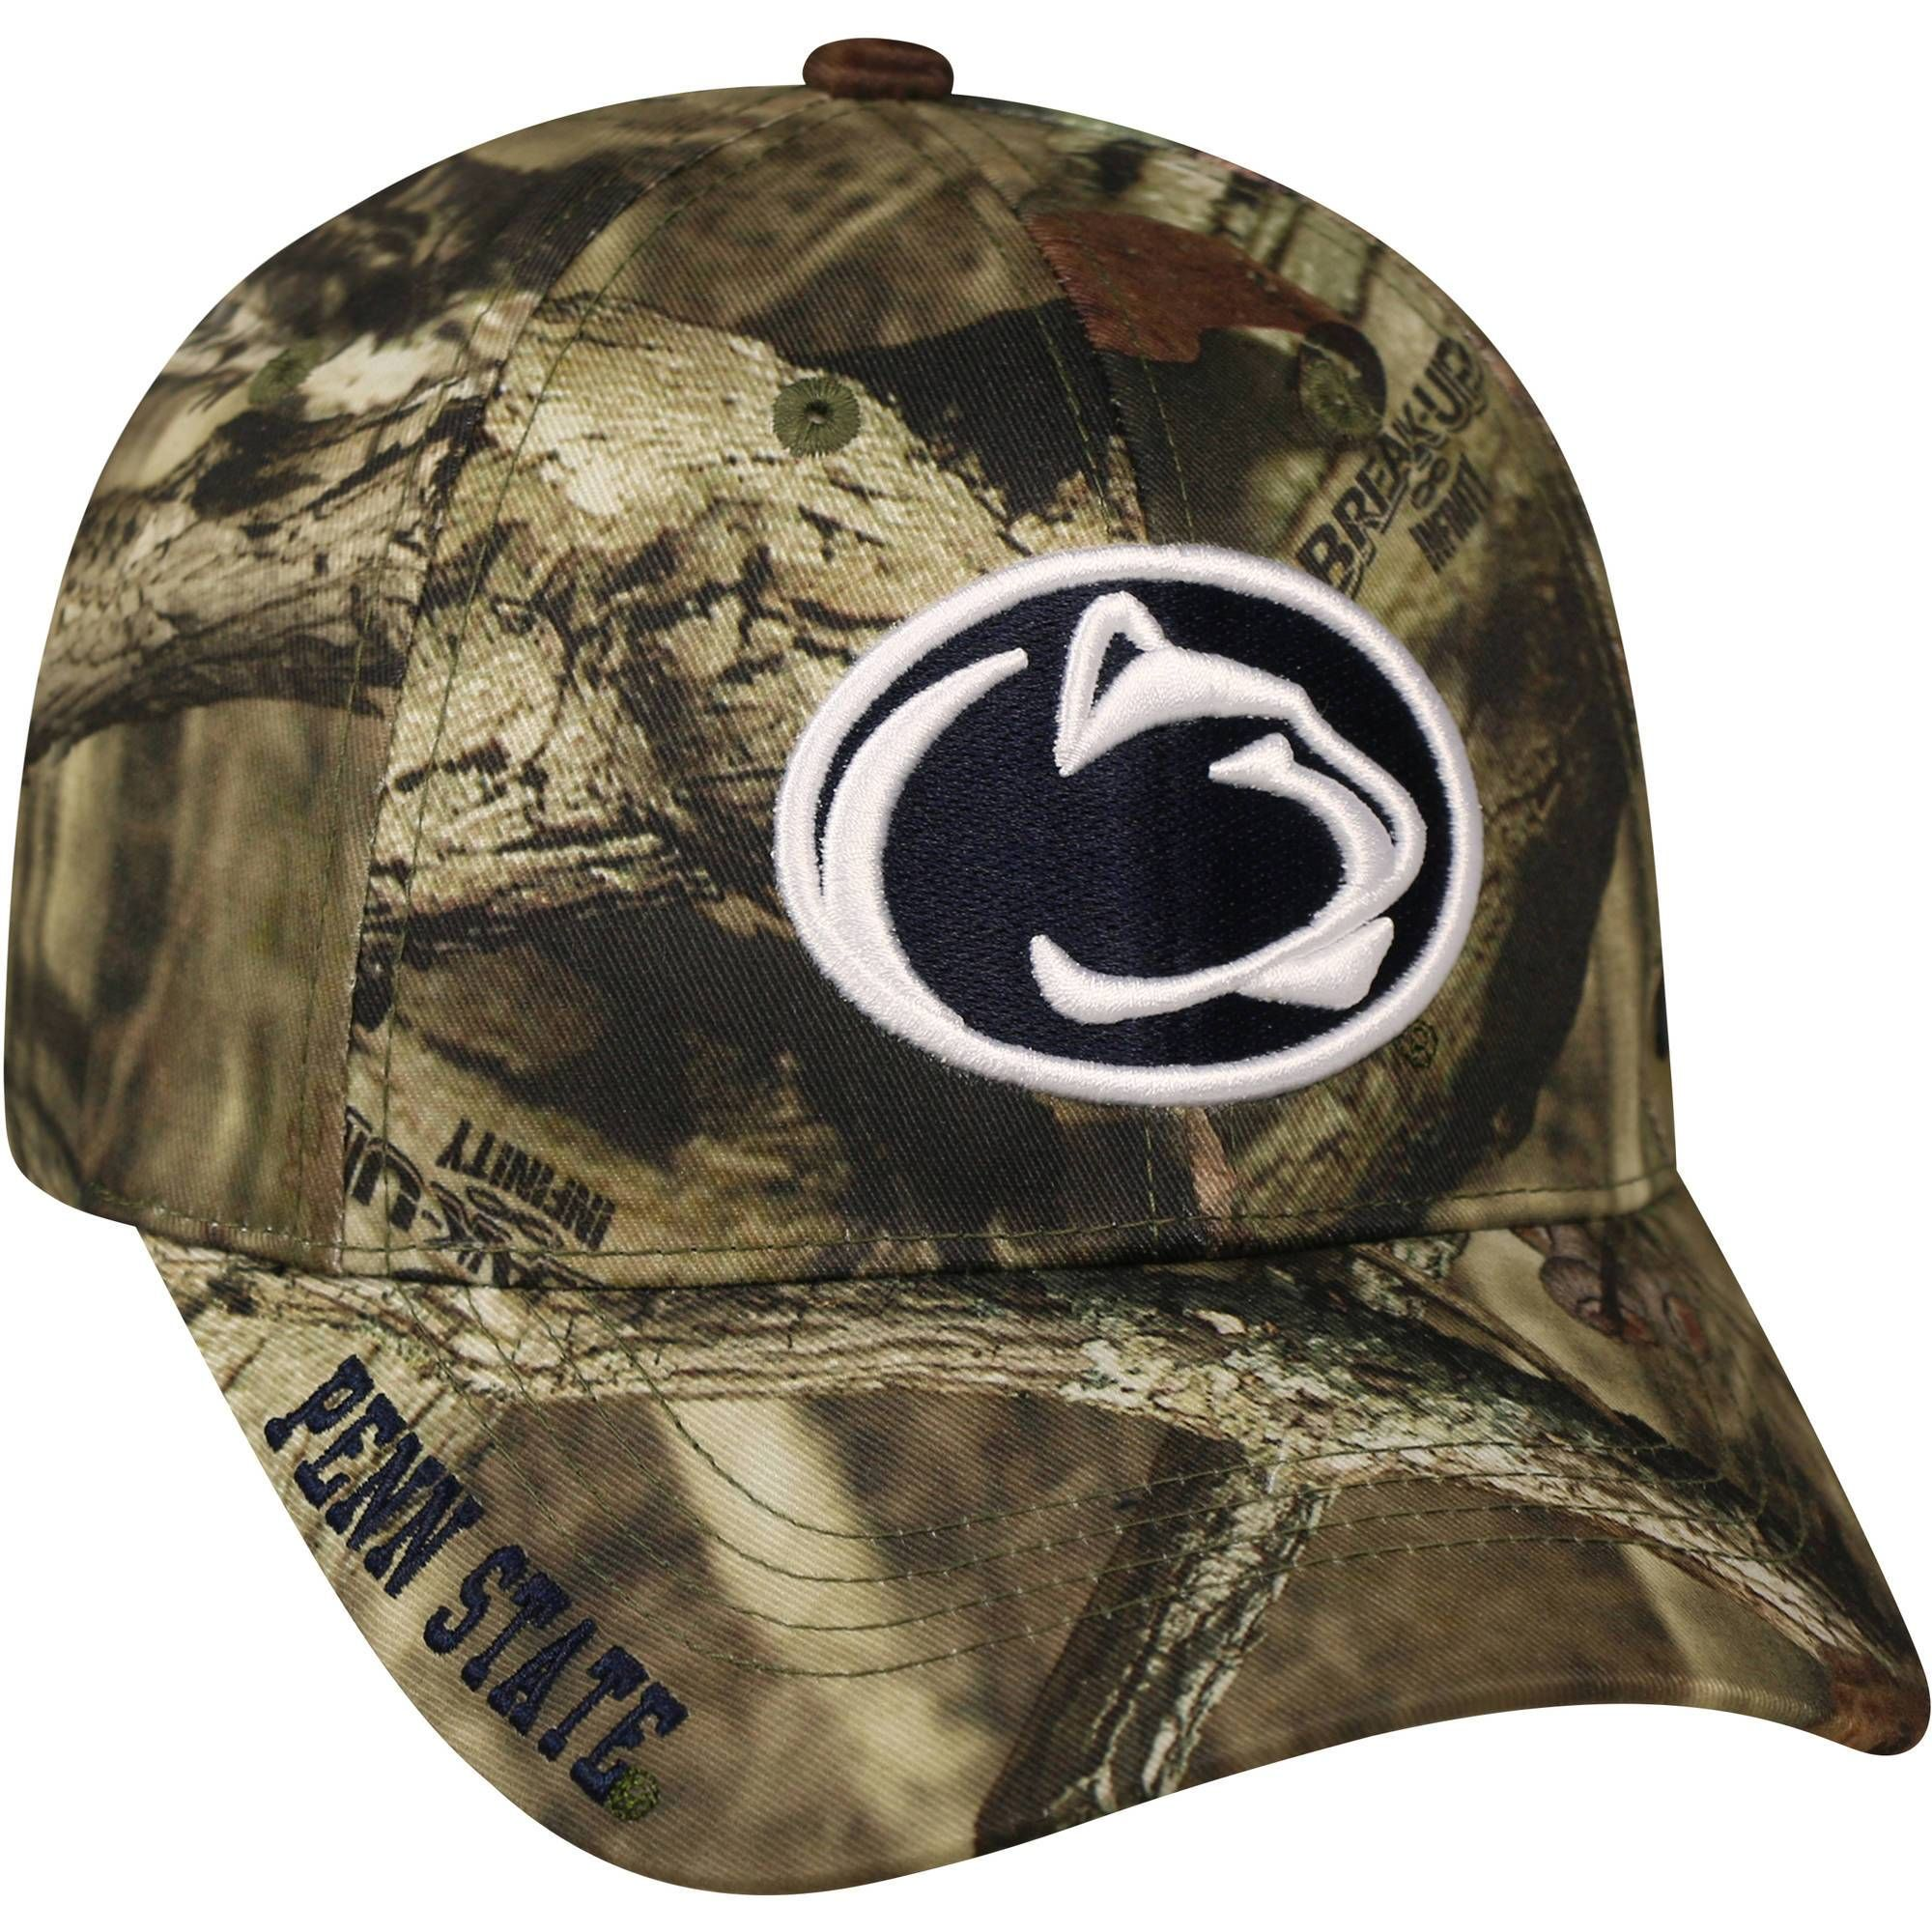 003b121b550 greece mens nike navy penn state nittany lions heritage 86 authentic  adjustable performance hat 4b60d 0c548  authentic penn state nittany lions  ncaa mens ...